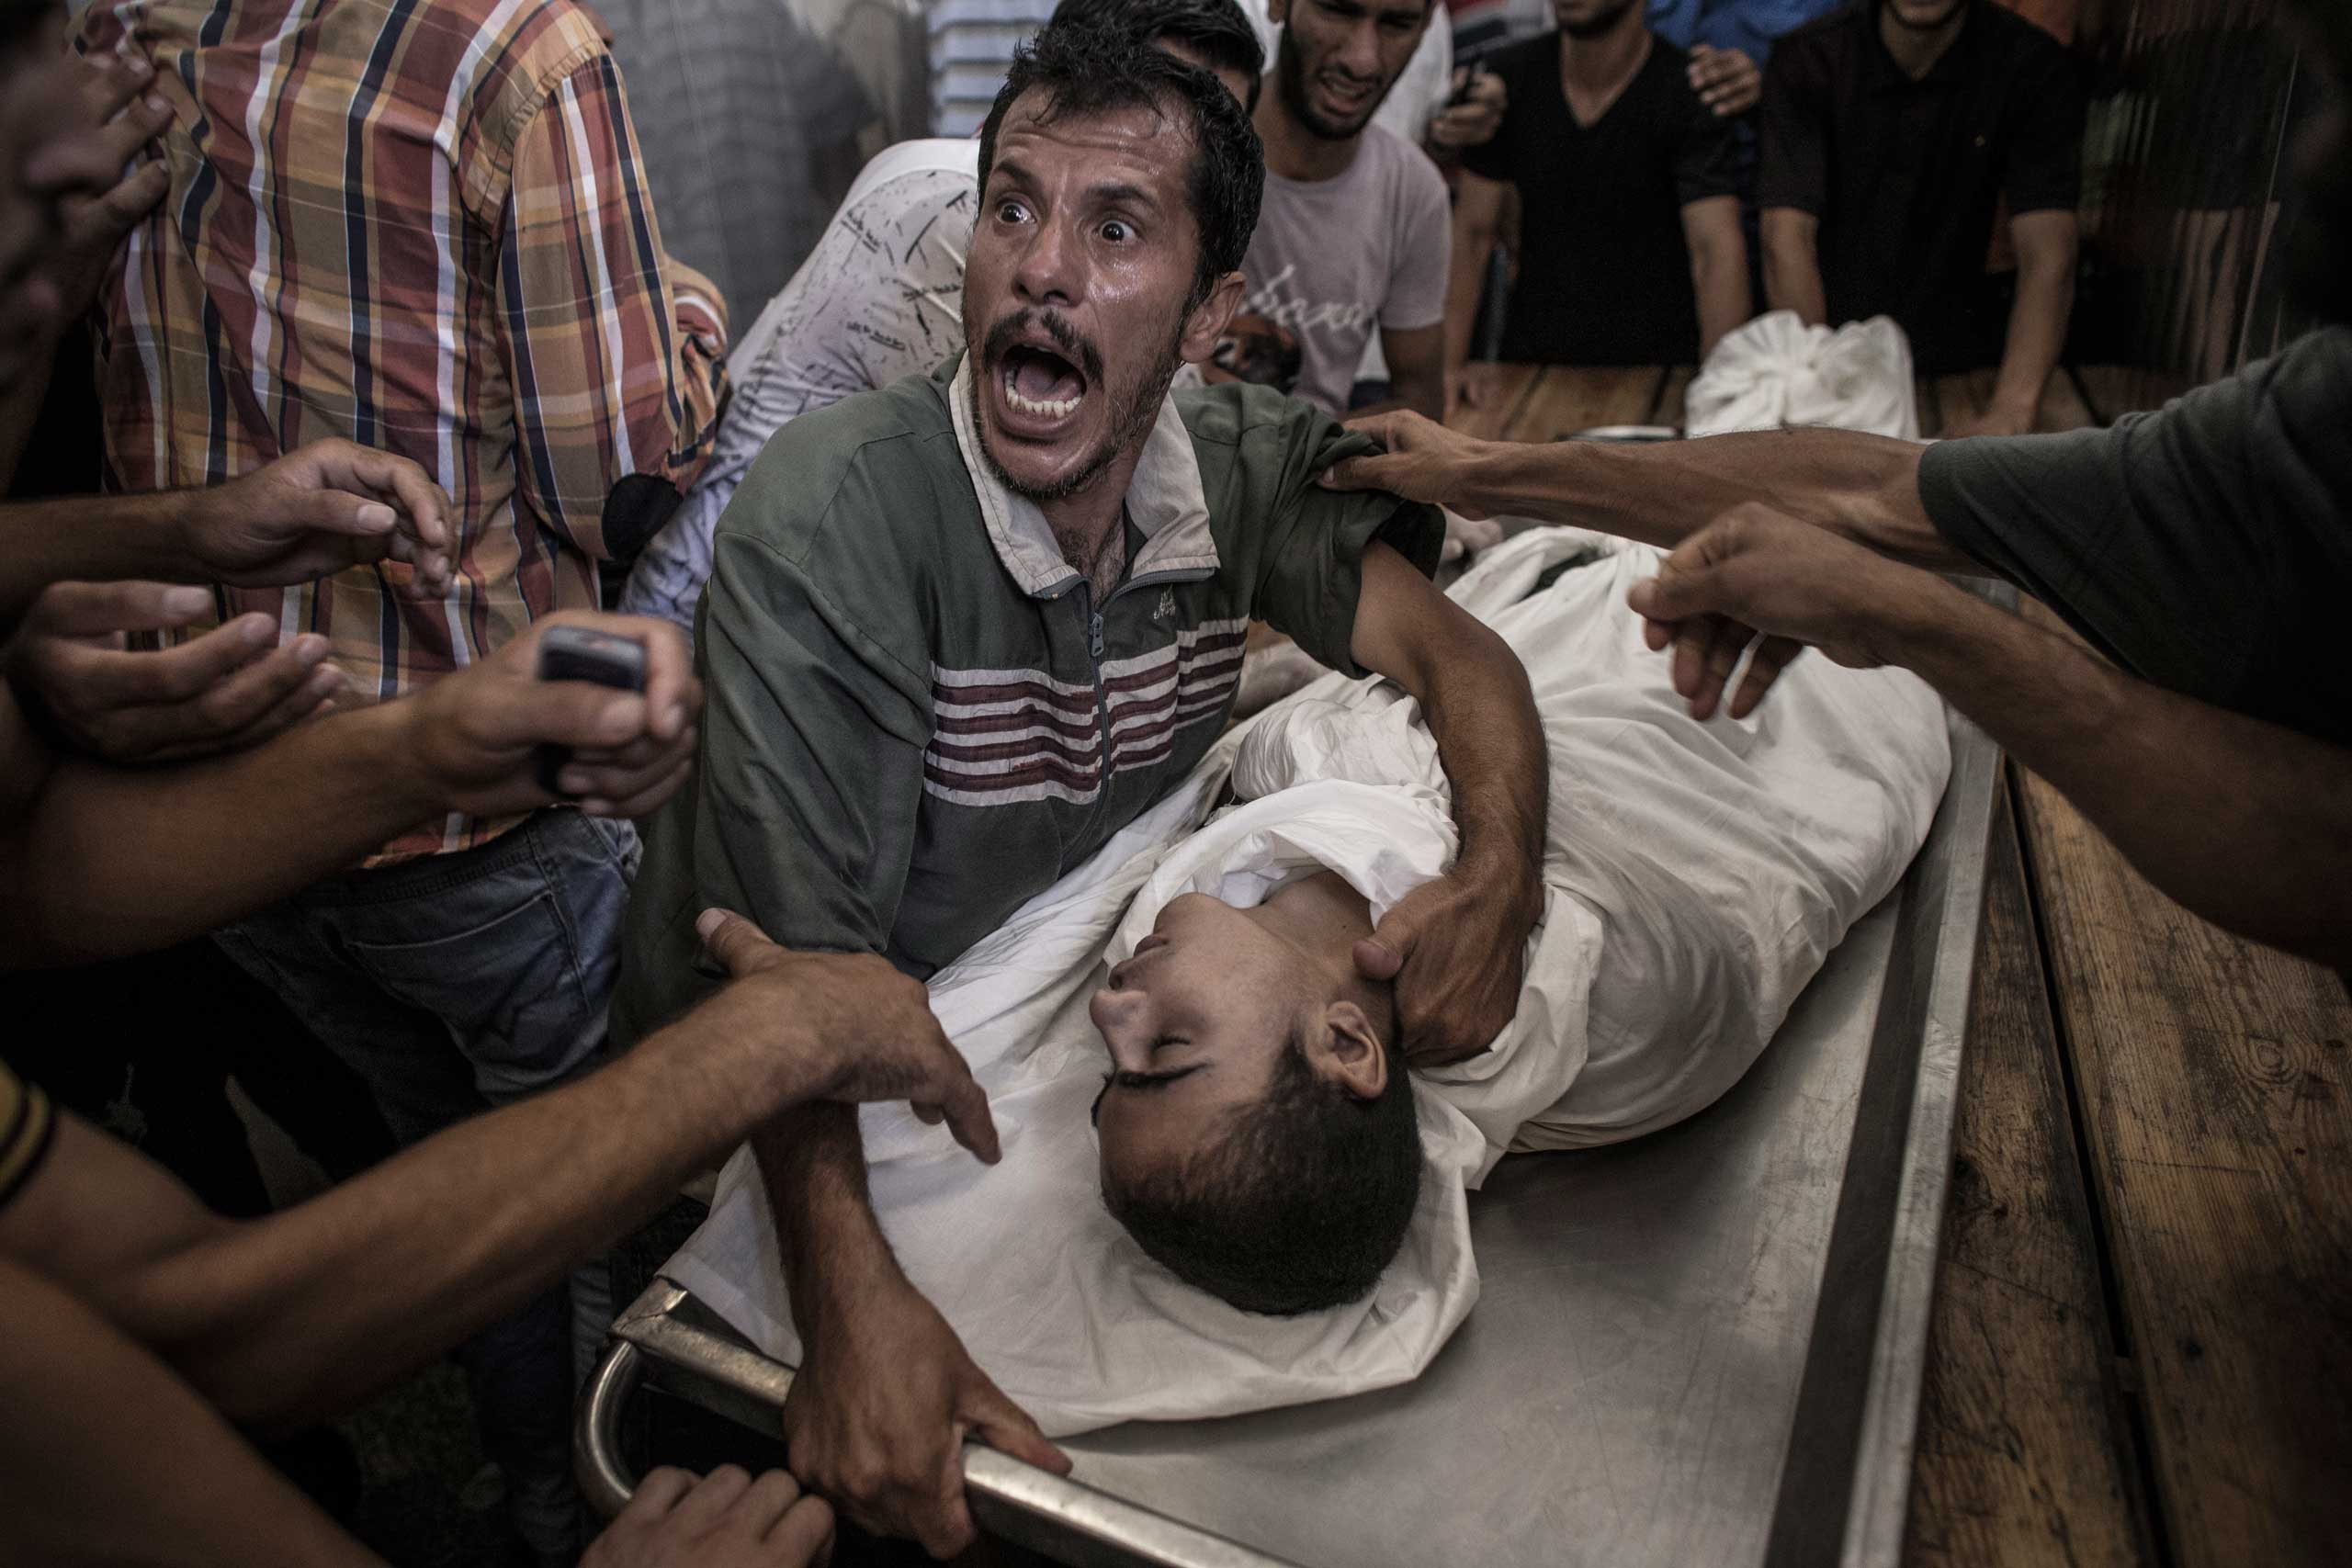 A Palestinian man cries over the body of his son, who died when medics say the U.N. school sheltering displaced persons came under fire, in the Kamal Adwan hospital in Beit Lahiya, Gaza Strip, July 24, 2014.